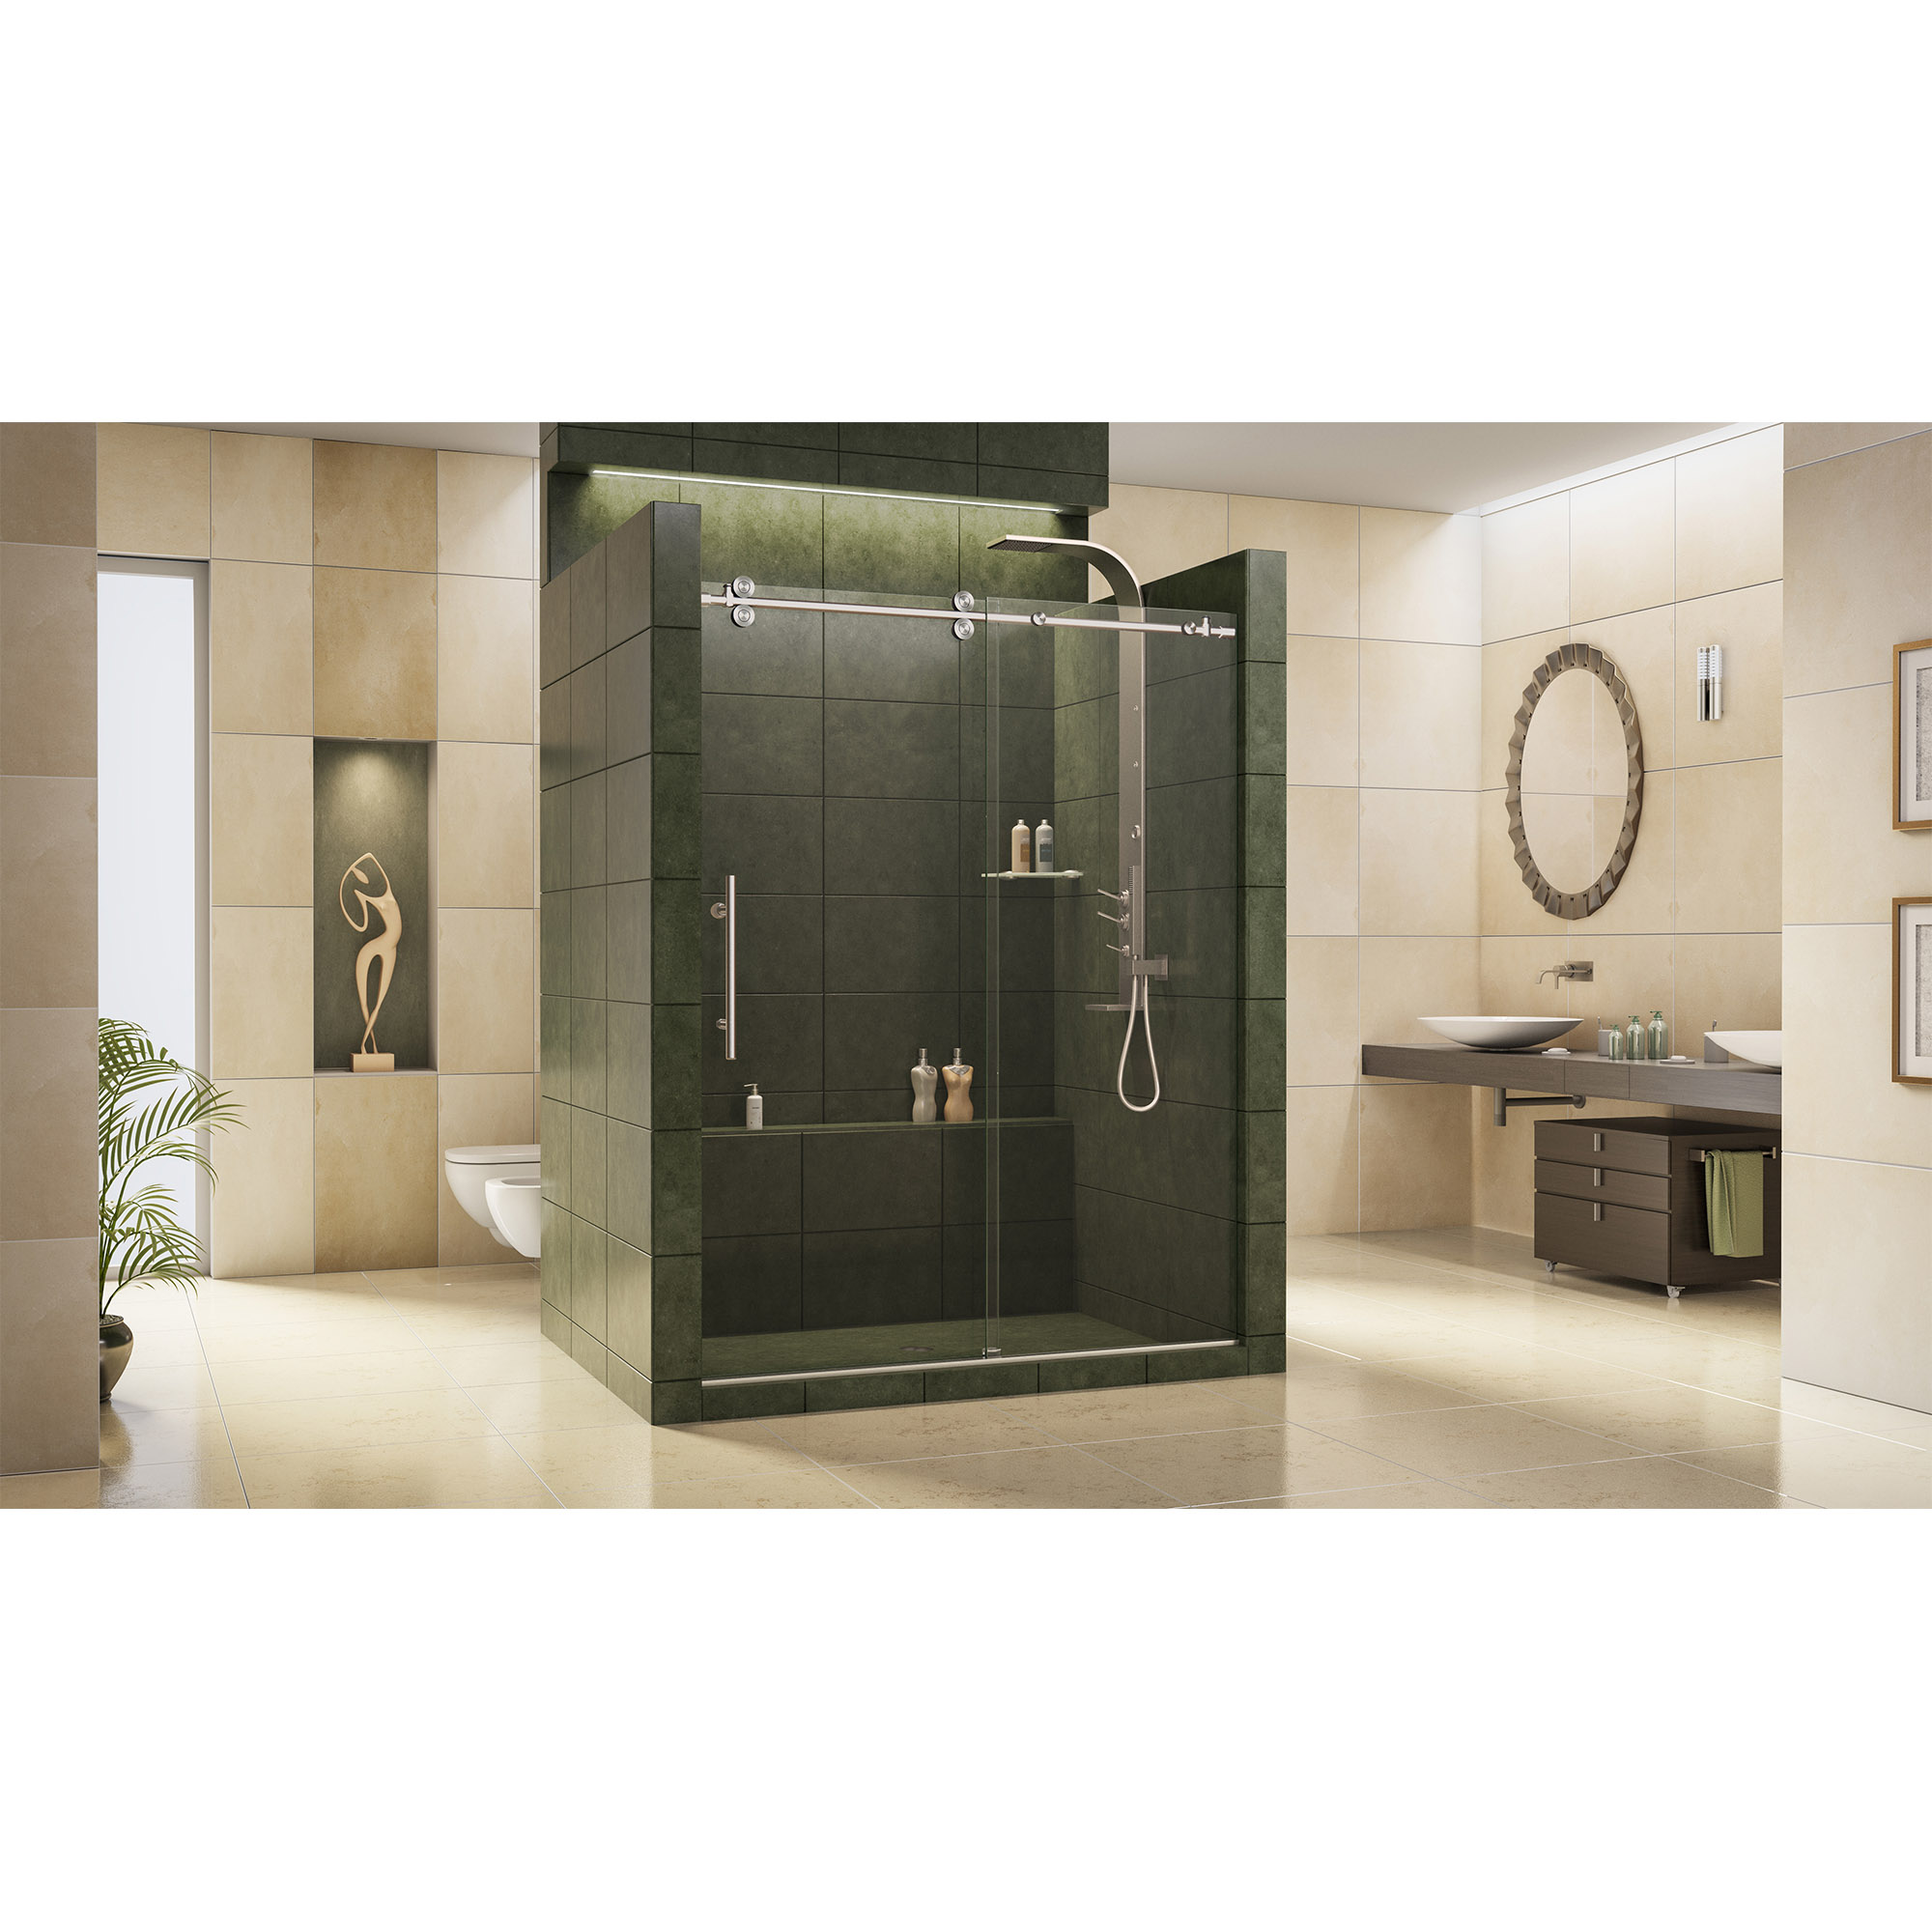 shower and showers homepage tub enigma glass door aqua dreamline doors hinged enclosures frameless